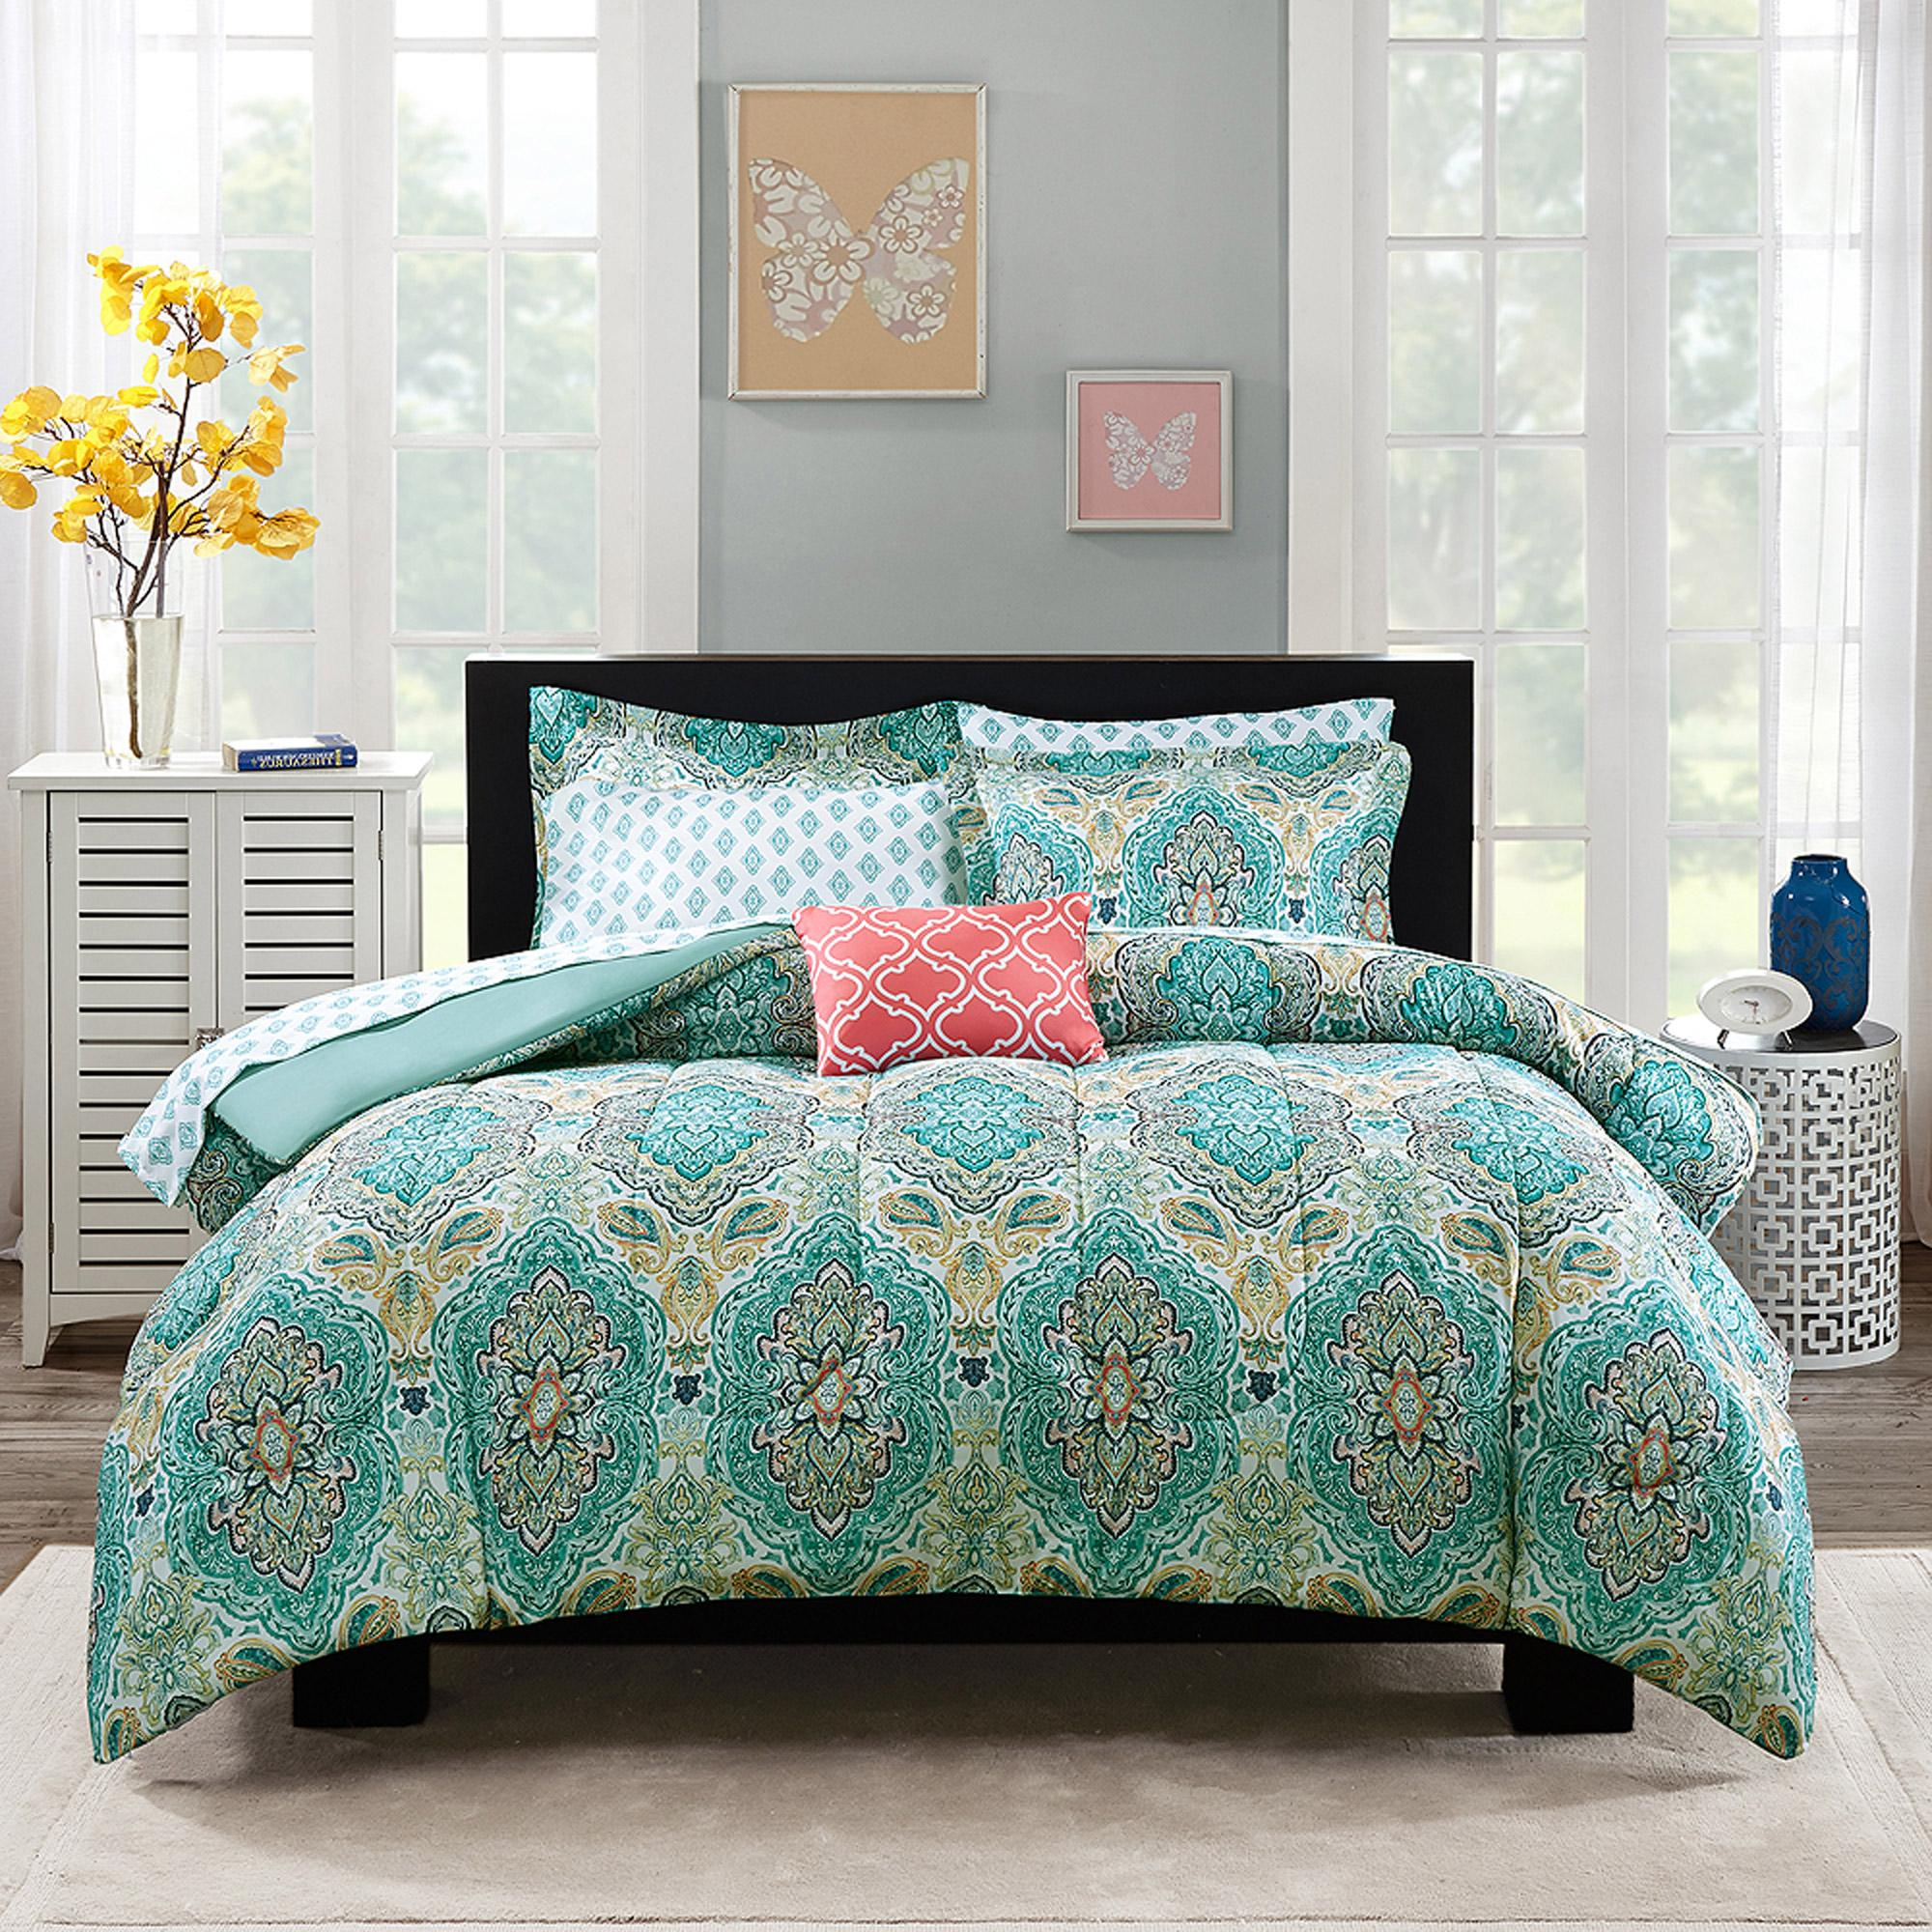 Cotton Comforter Set | Discount Comforter Sets | Sears Comforter Sets